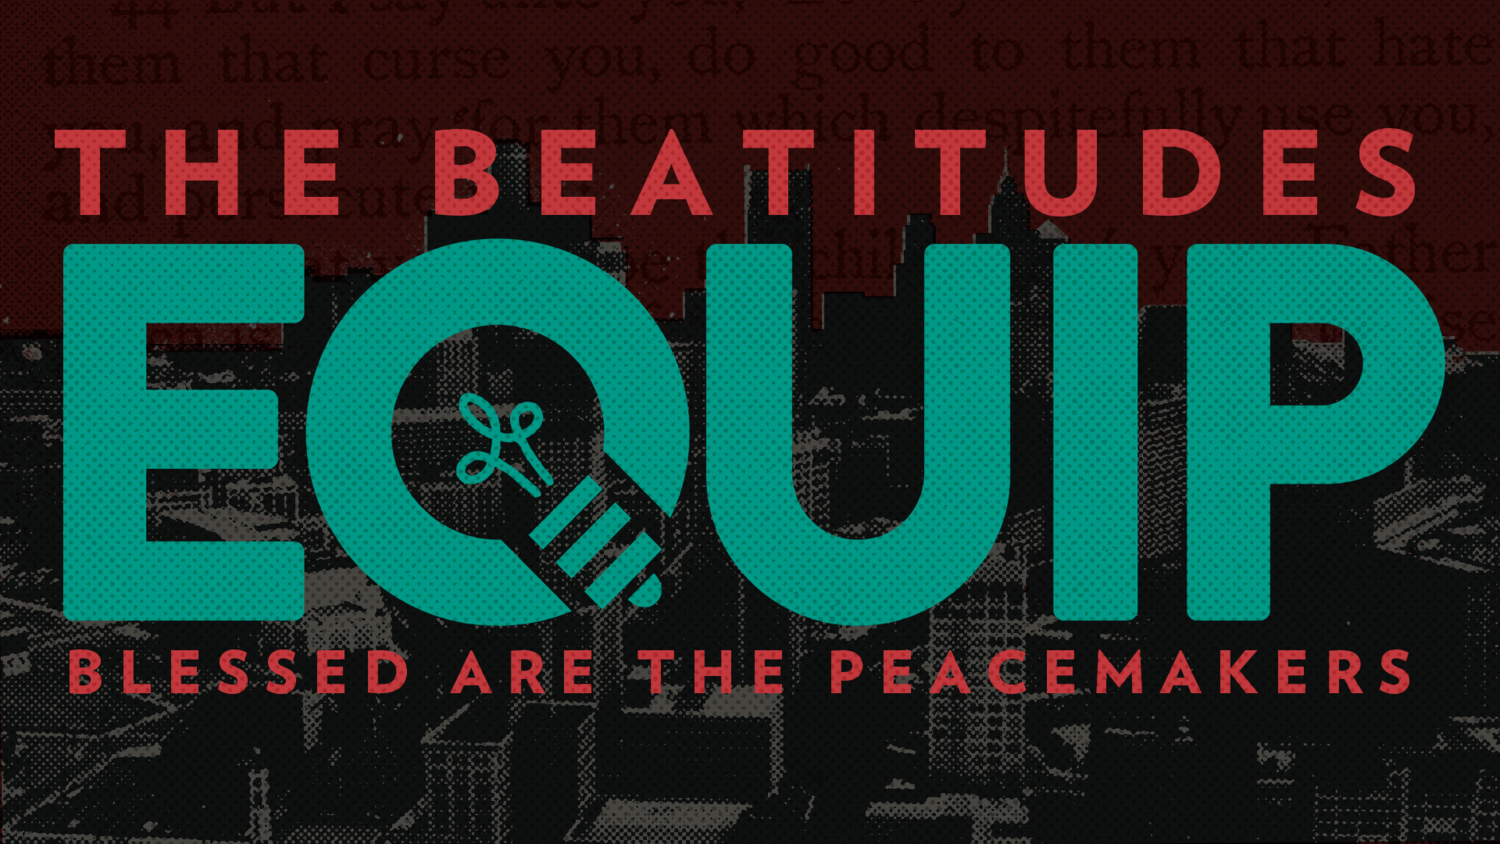 7 Blessed are the peacemakers — Courage Church